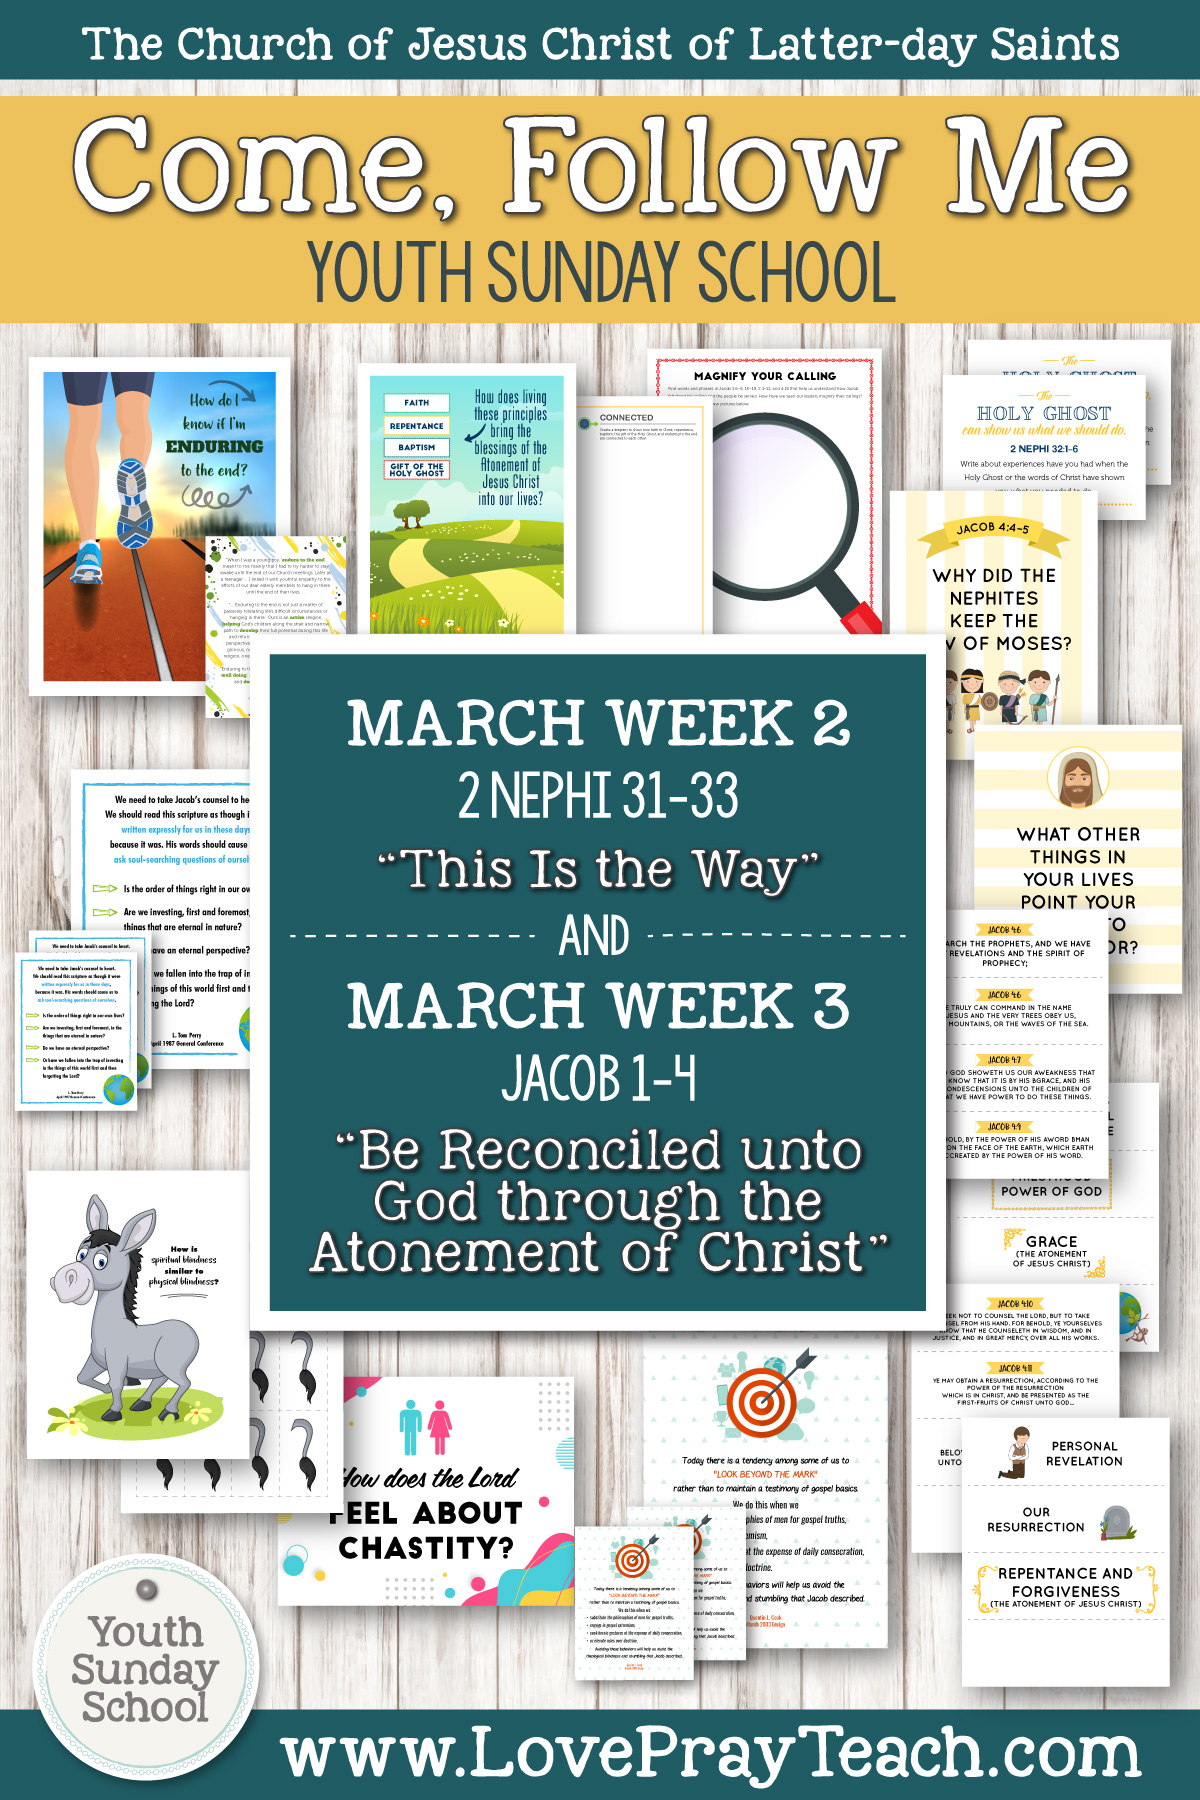 "Youth Sunday School Come, Follow Me Book of Mormon 2020 March 2–8 2 Nephi 31–33 ""This Is the Way"" AND March 9–15 Jacob 1–4 ""Be Reconciled..."" Printable Lesson Packet for Latter-day Saints"